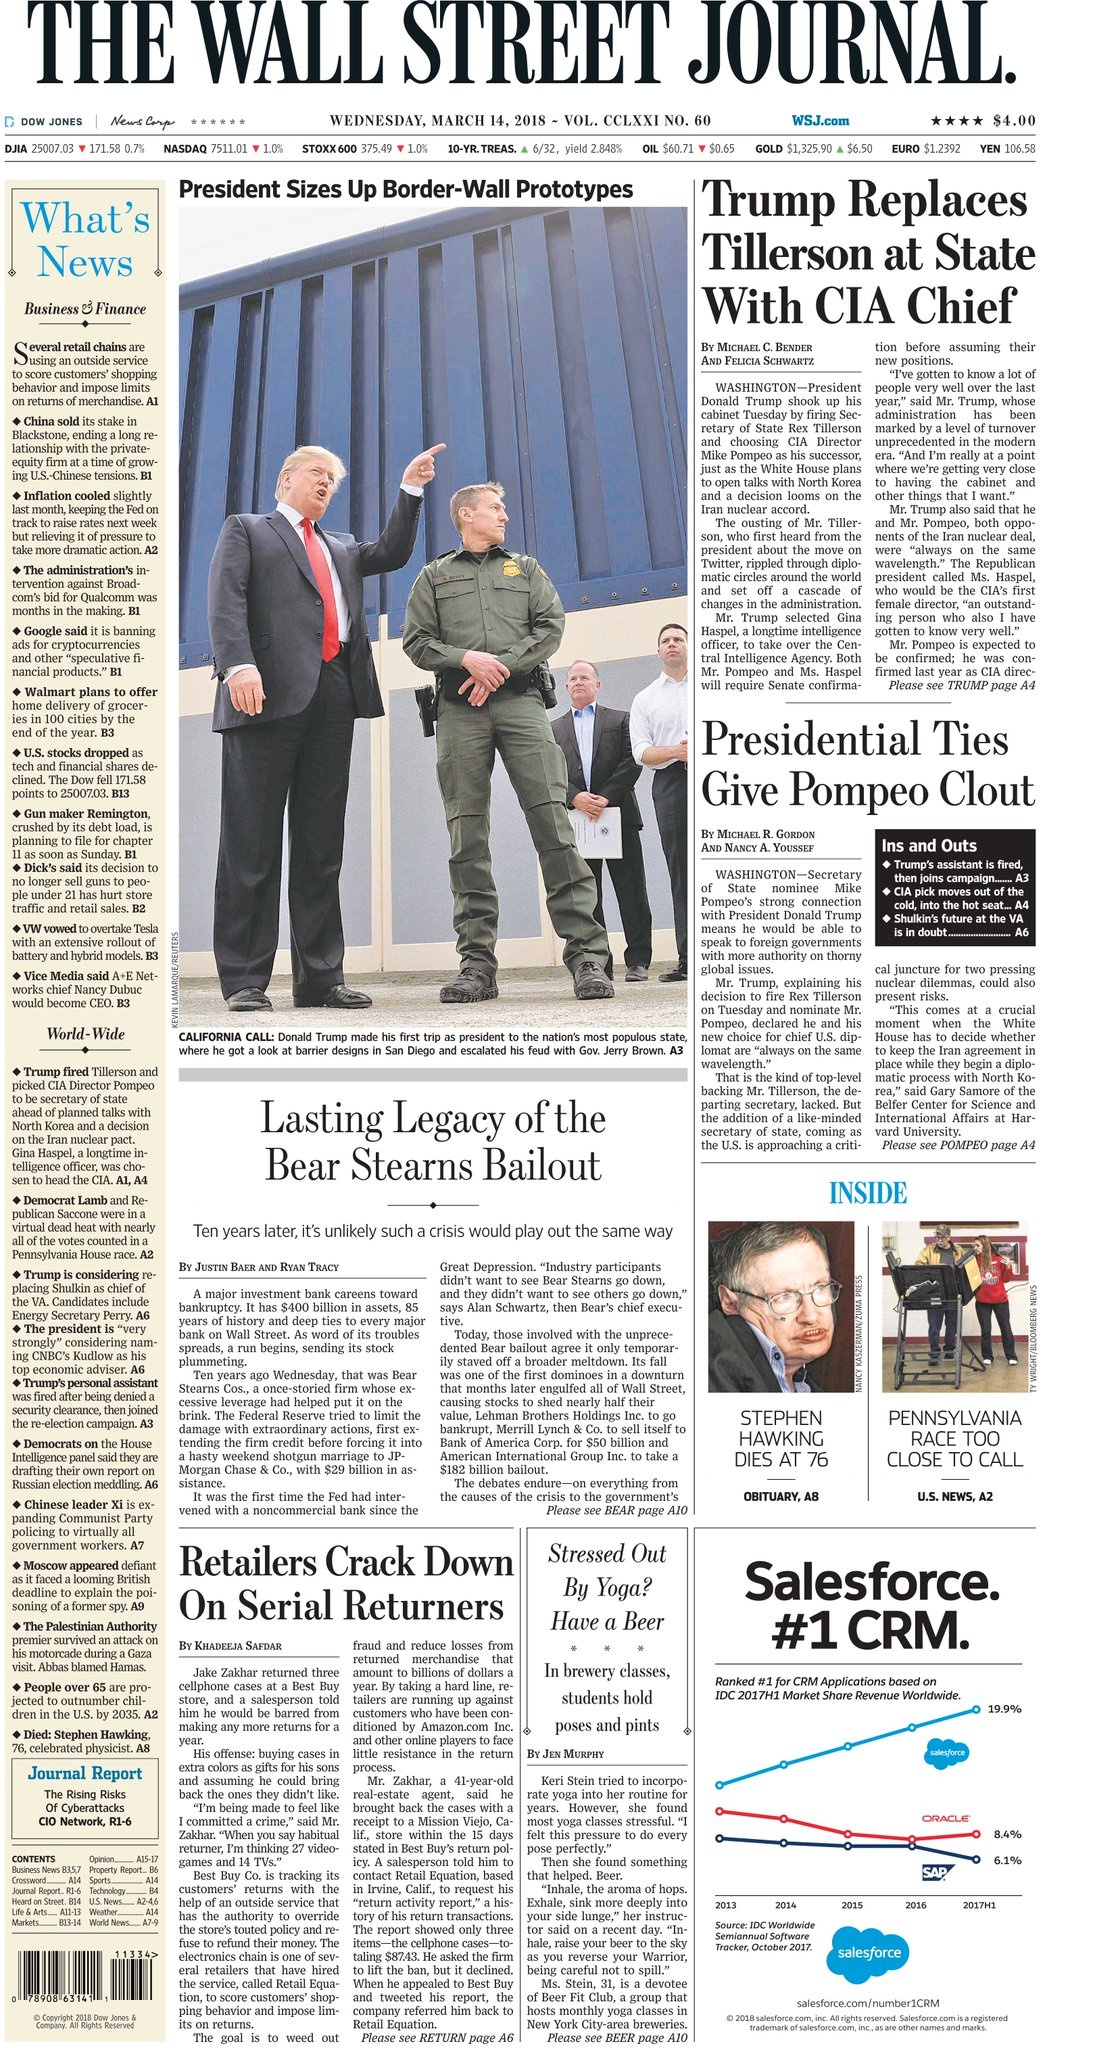 Take a look at the front page of today's Wall Street Journal https://t.co/7MA76kNOet